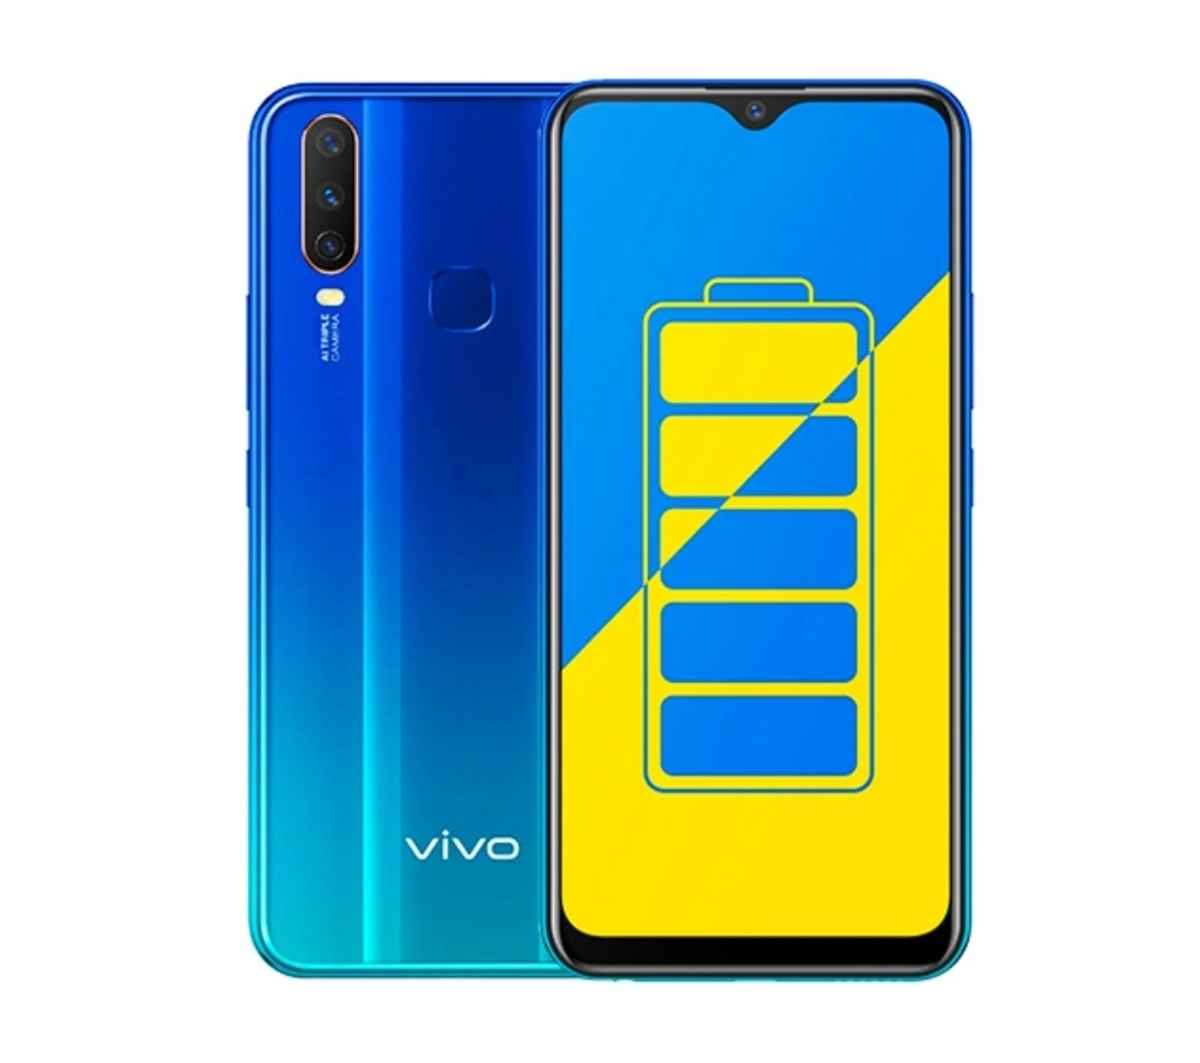 Vivo Y15, Vivo Y15 price and specs in Nigeria